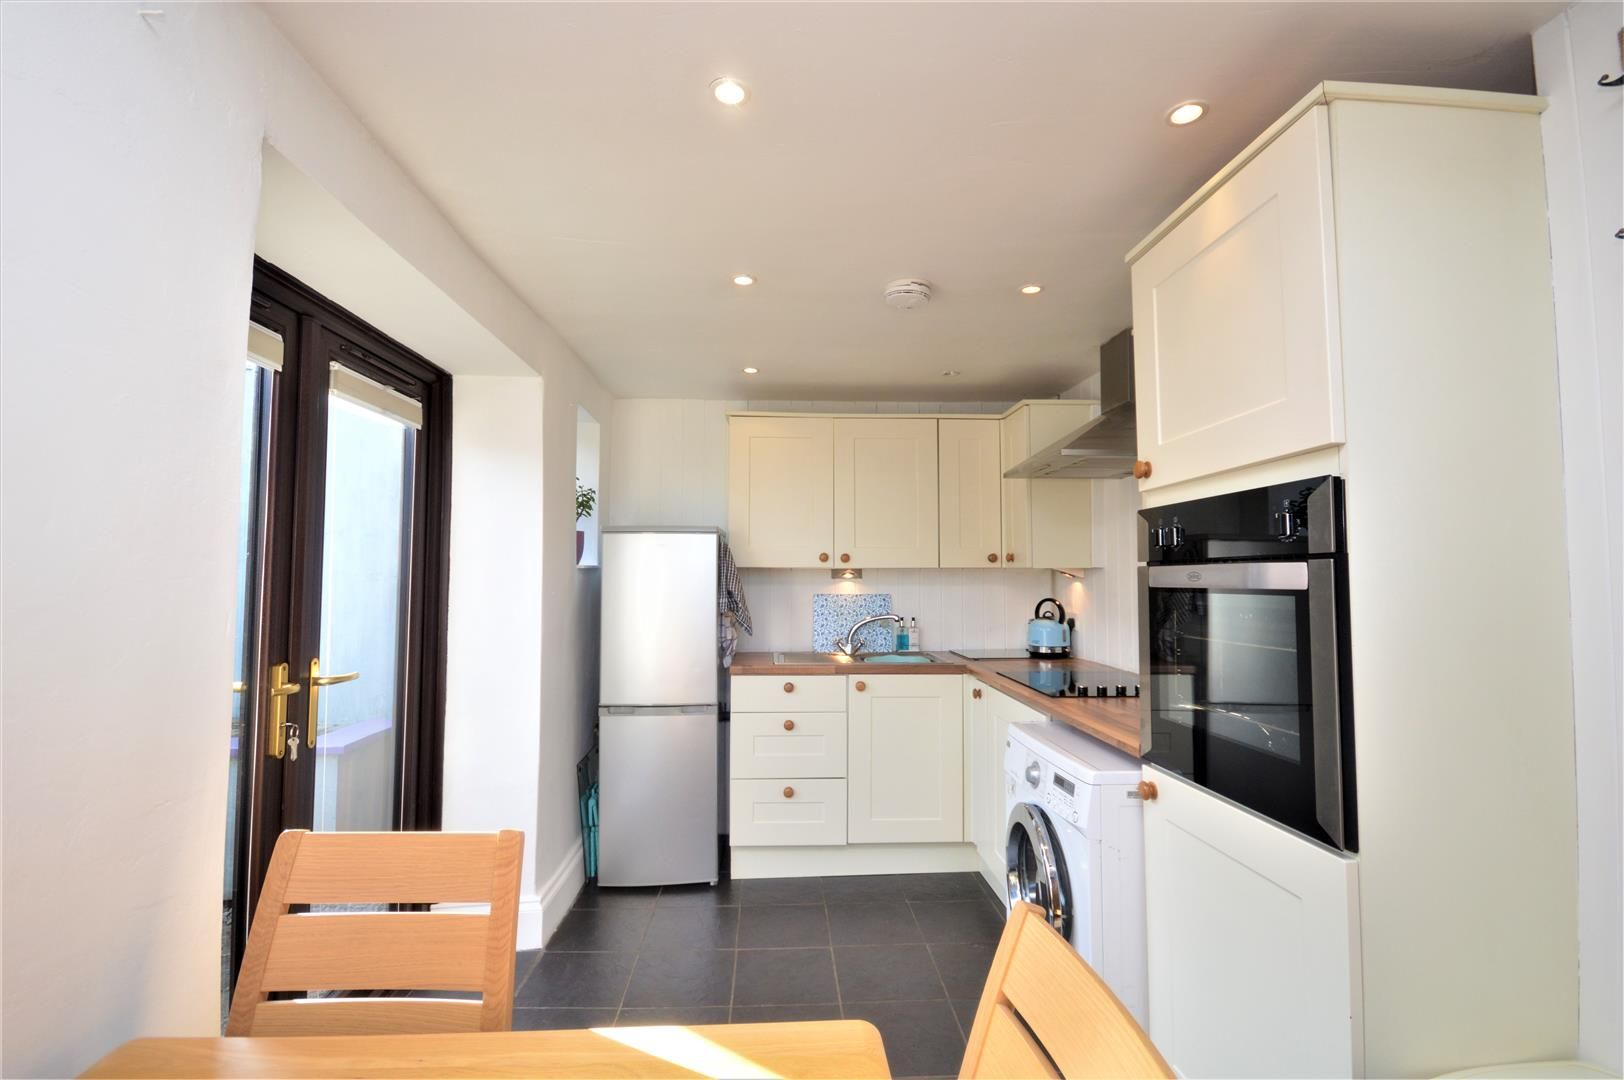 1 bed end-of-terrace for sale in Callow  - Property Image 6